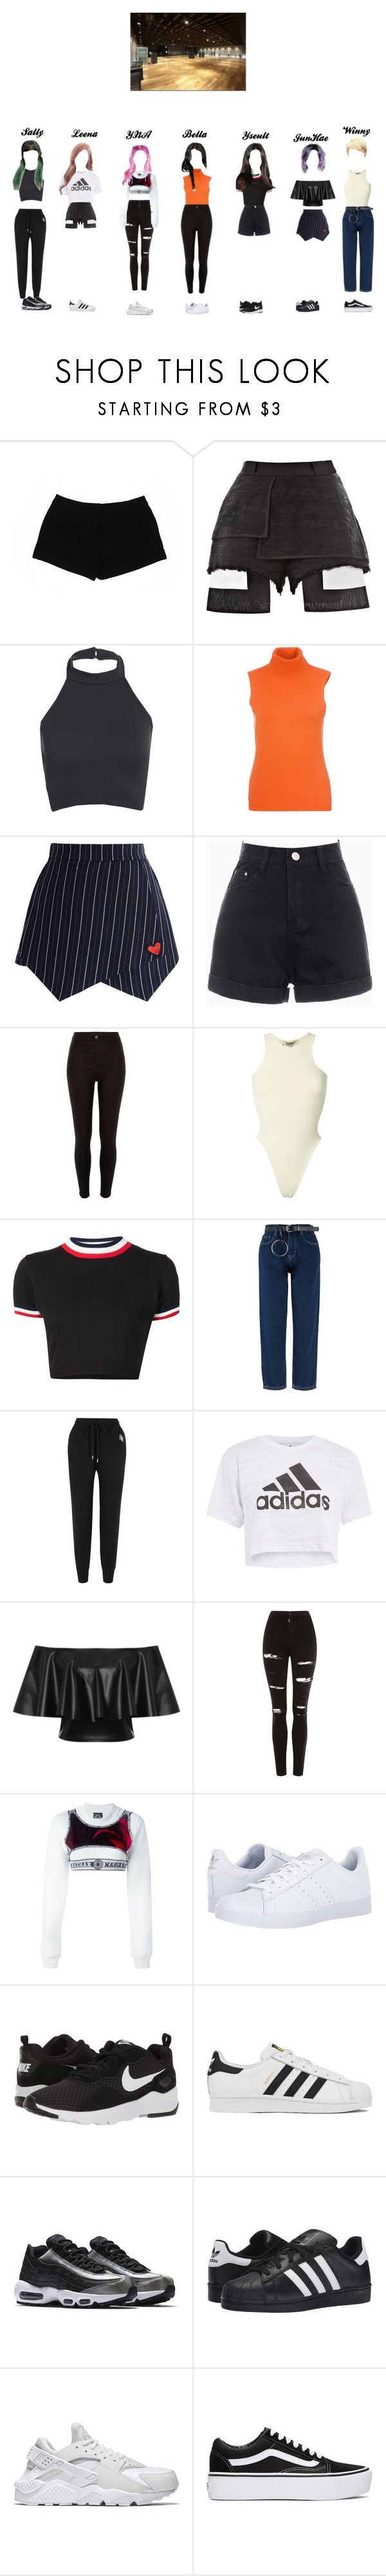 """""""G.R.L.Z- Whatta Man 'Dance Practice'"""" by g-r-l-zofficial ❤ liked on Polyvore featuring Express, E L L E R Y, Chicwish, River Island, Yeezy by Kanye West, UNIF, Markus Lupfer, Topshop, WearAll and Nasir Mazhar"""